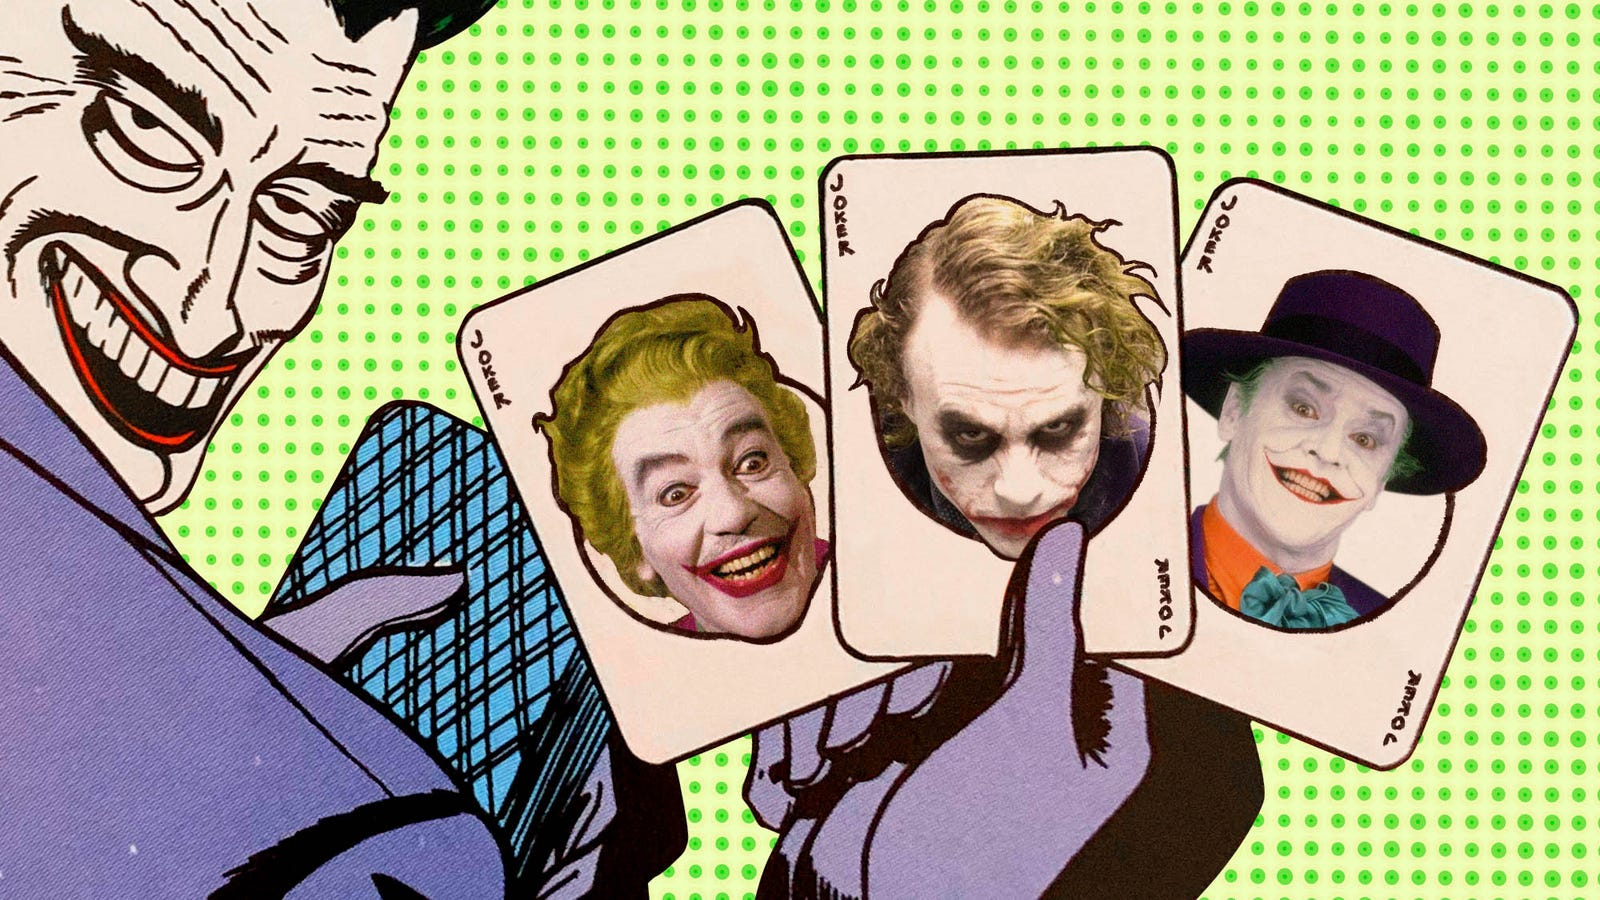 A deck of Jokers: Going deeper with The Clown Prince of Crime